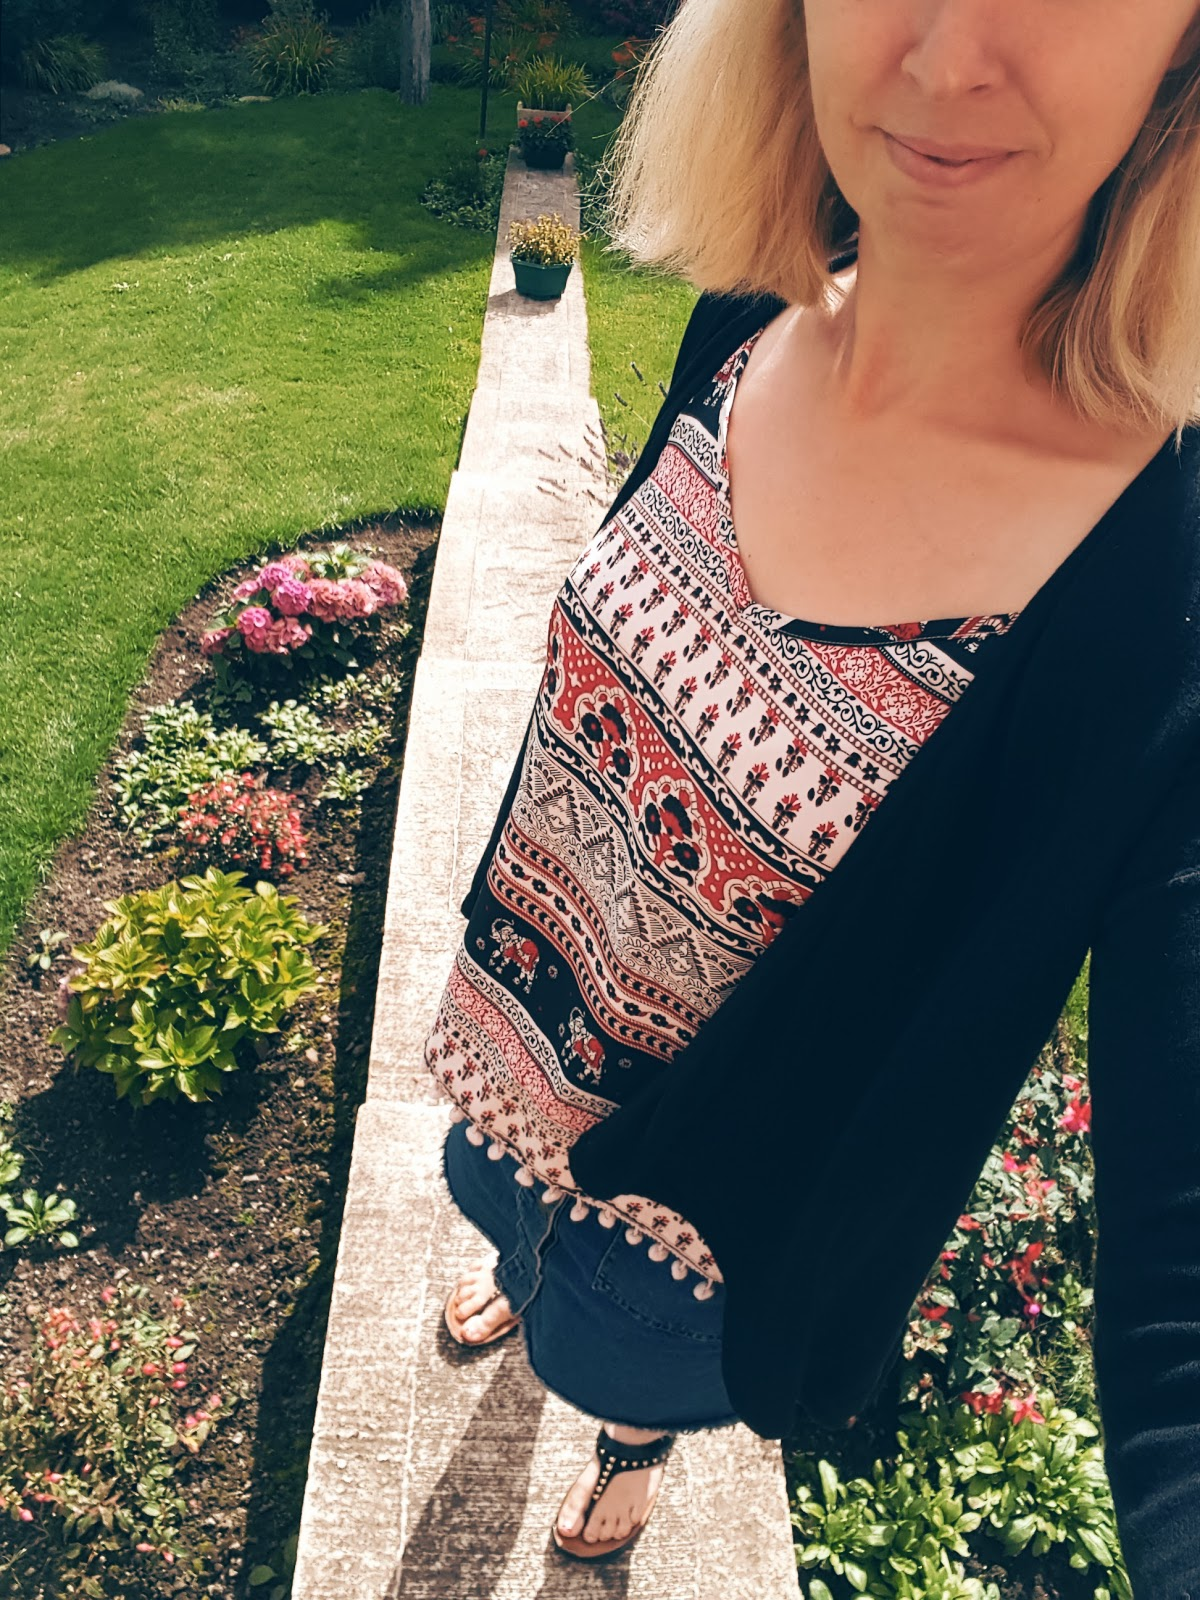 What I Wore: Bargain Primark Top Car Boot Sale For 50p!